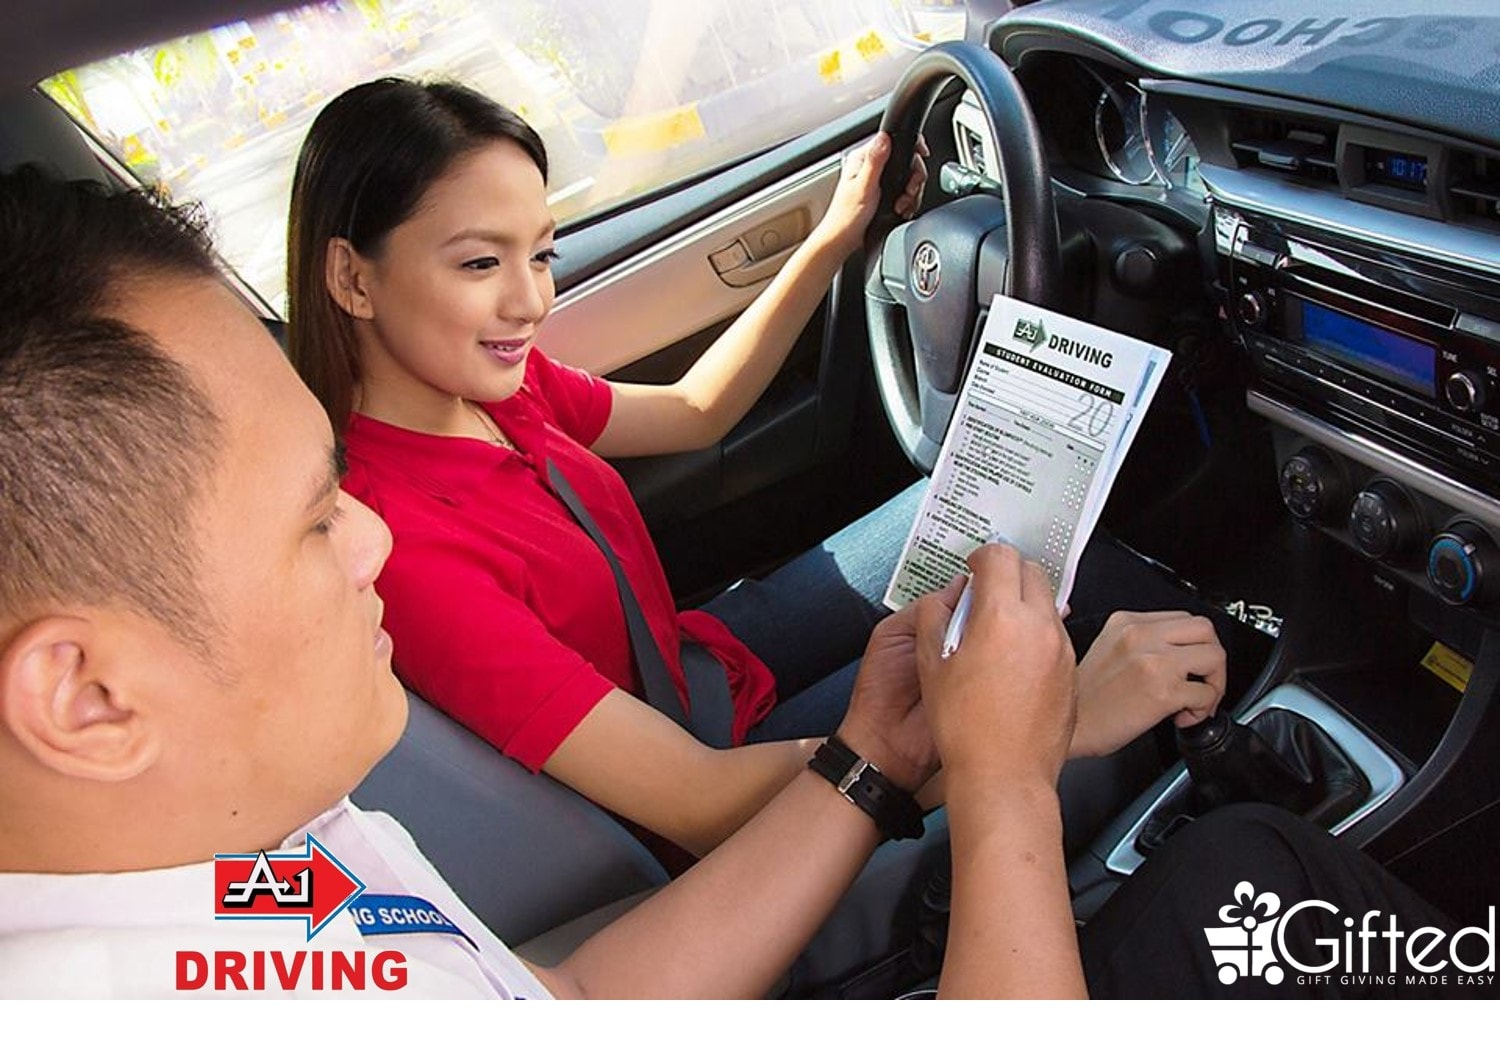 A-1 Driving school this summer